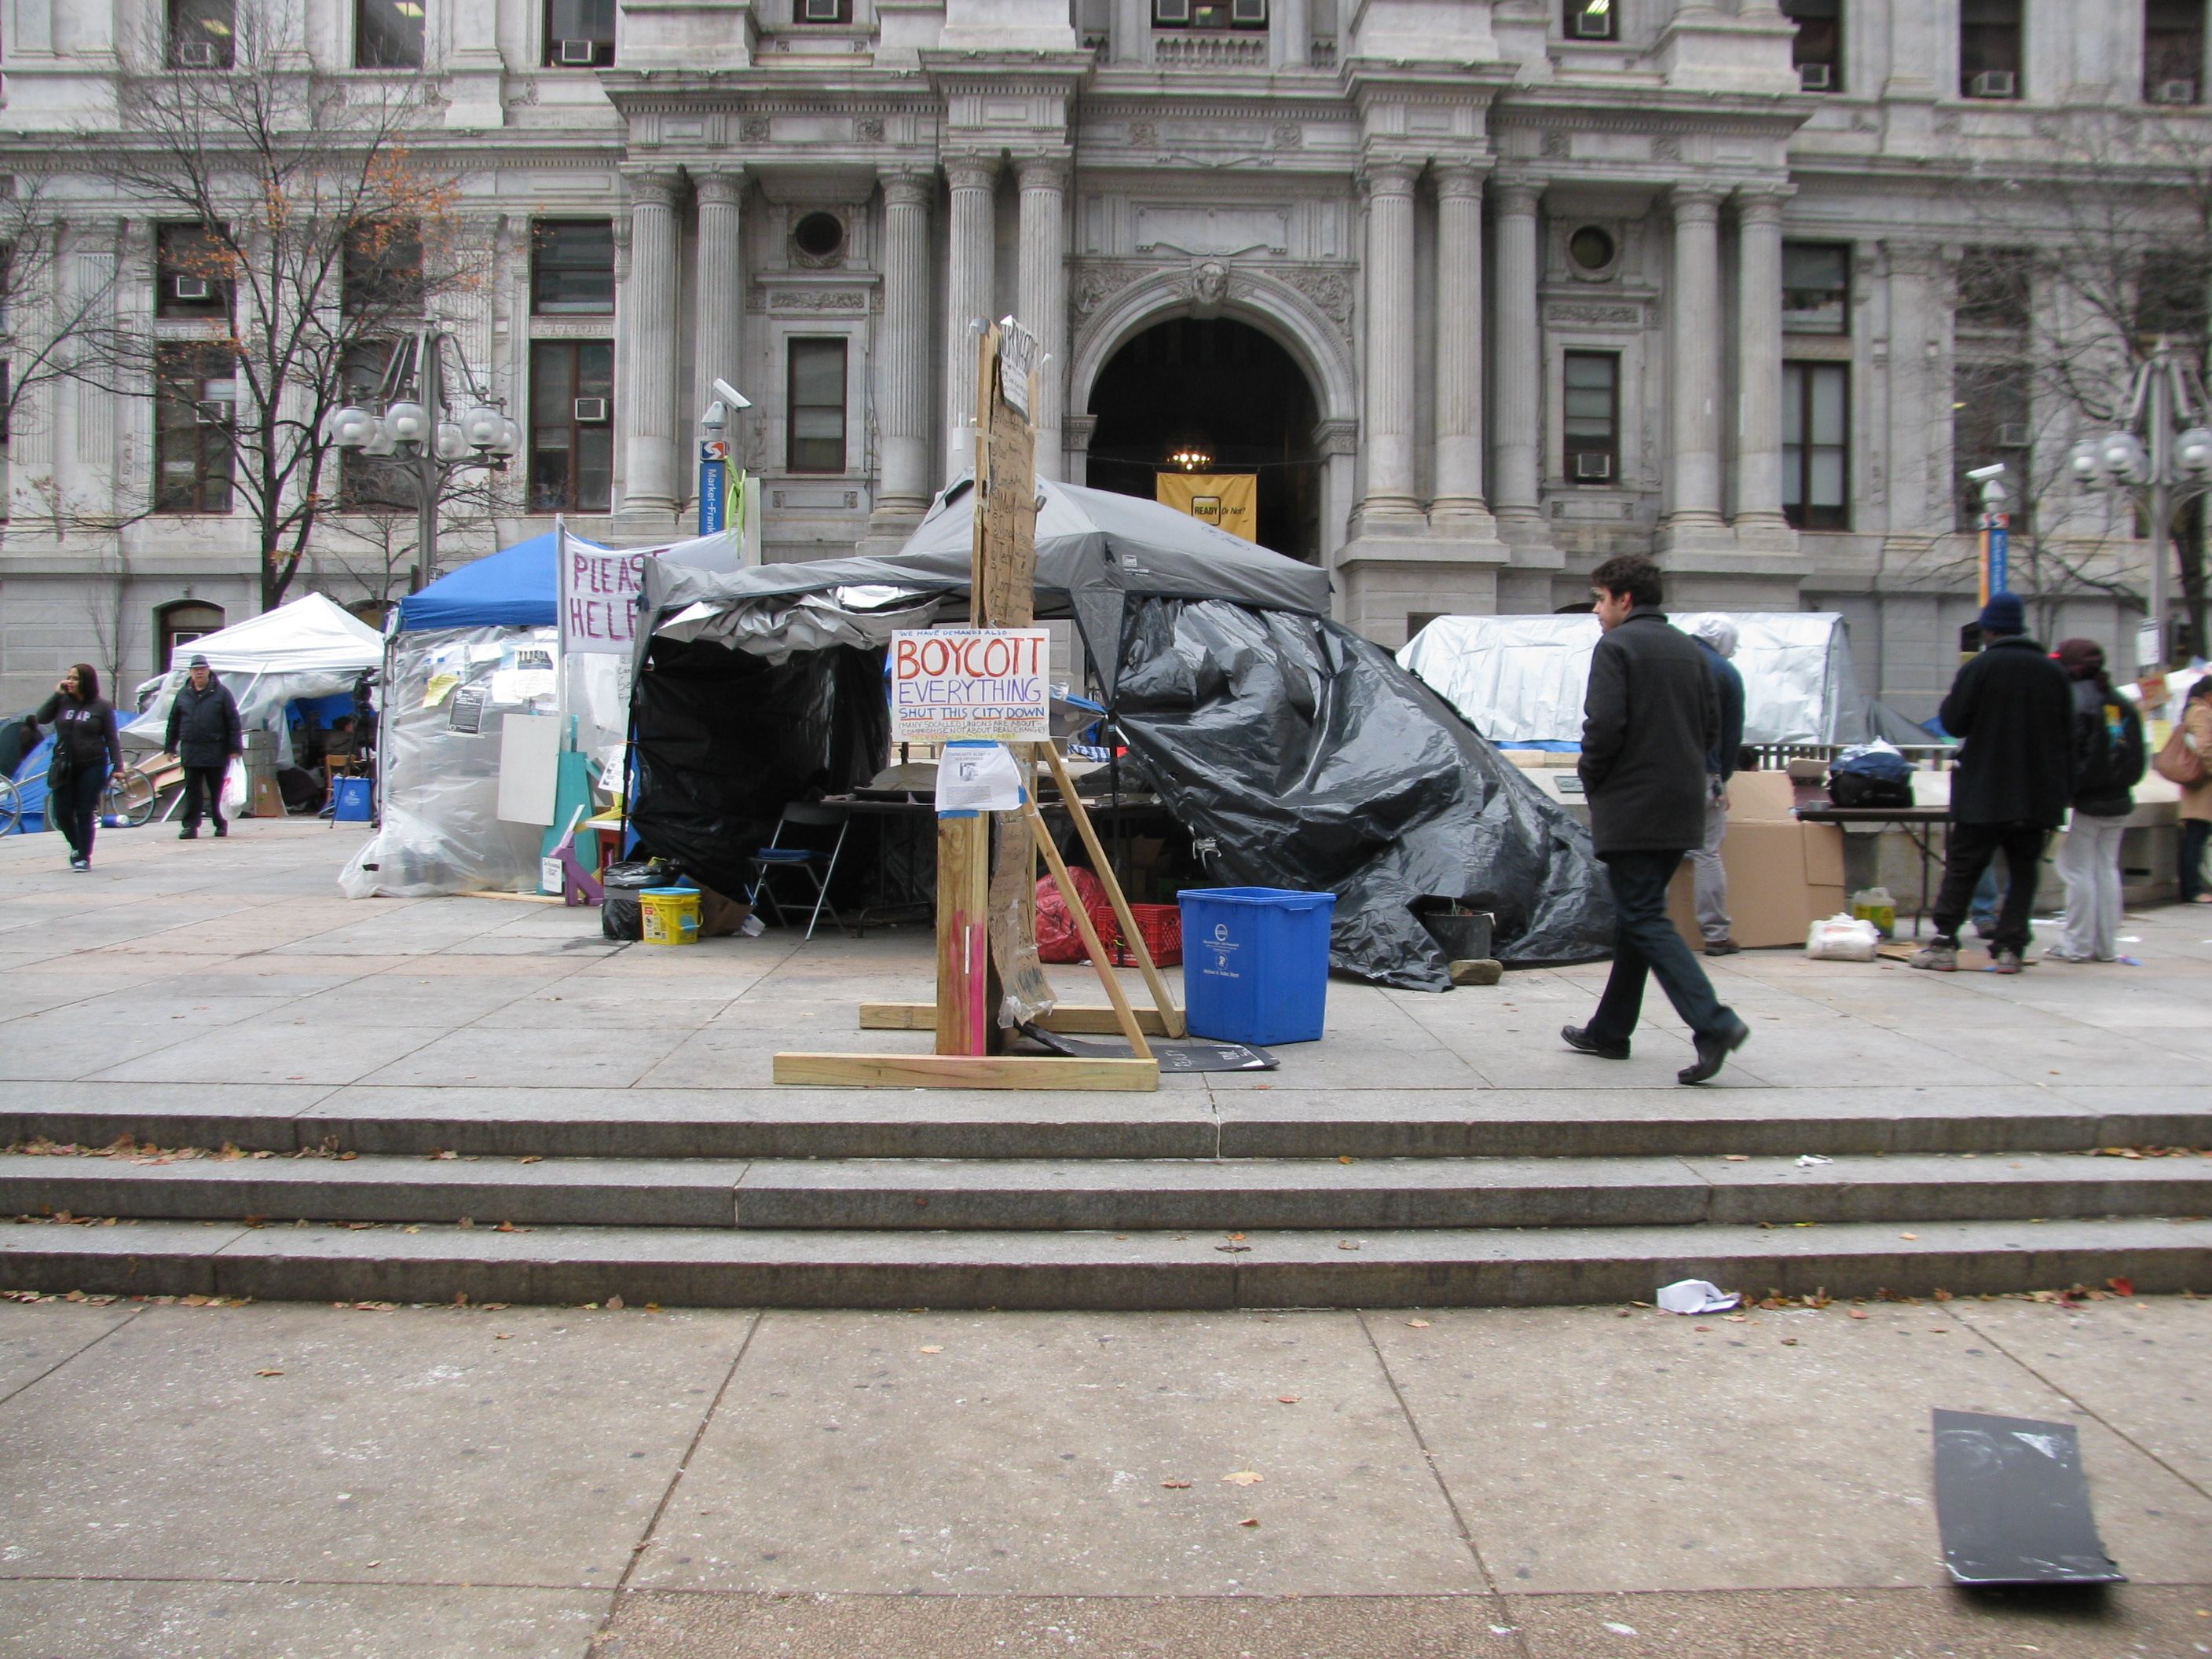 Occupy Philly As Spontaneous Urbanism, Part III